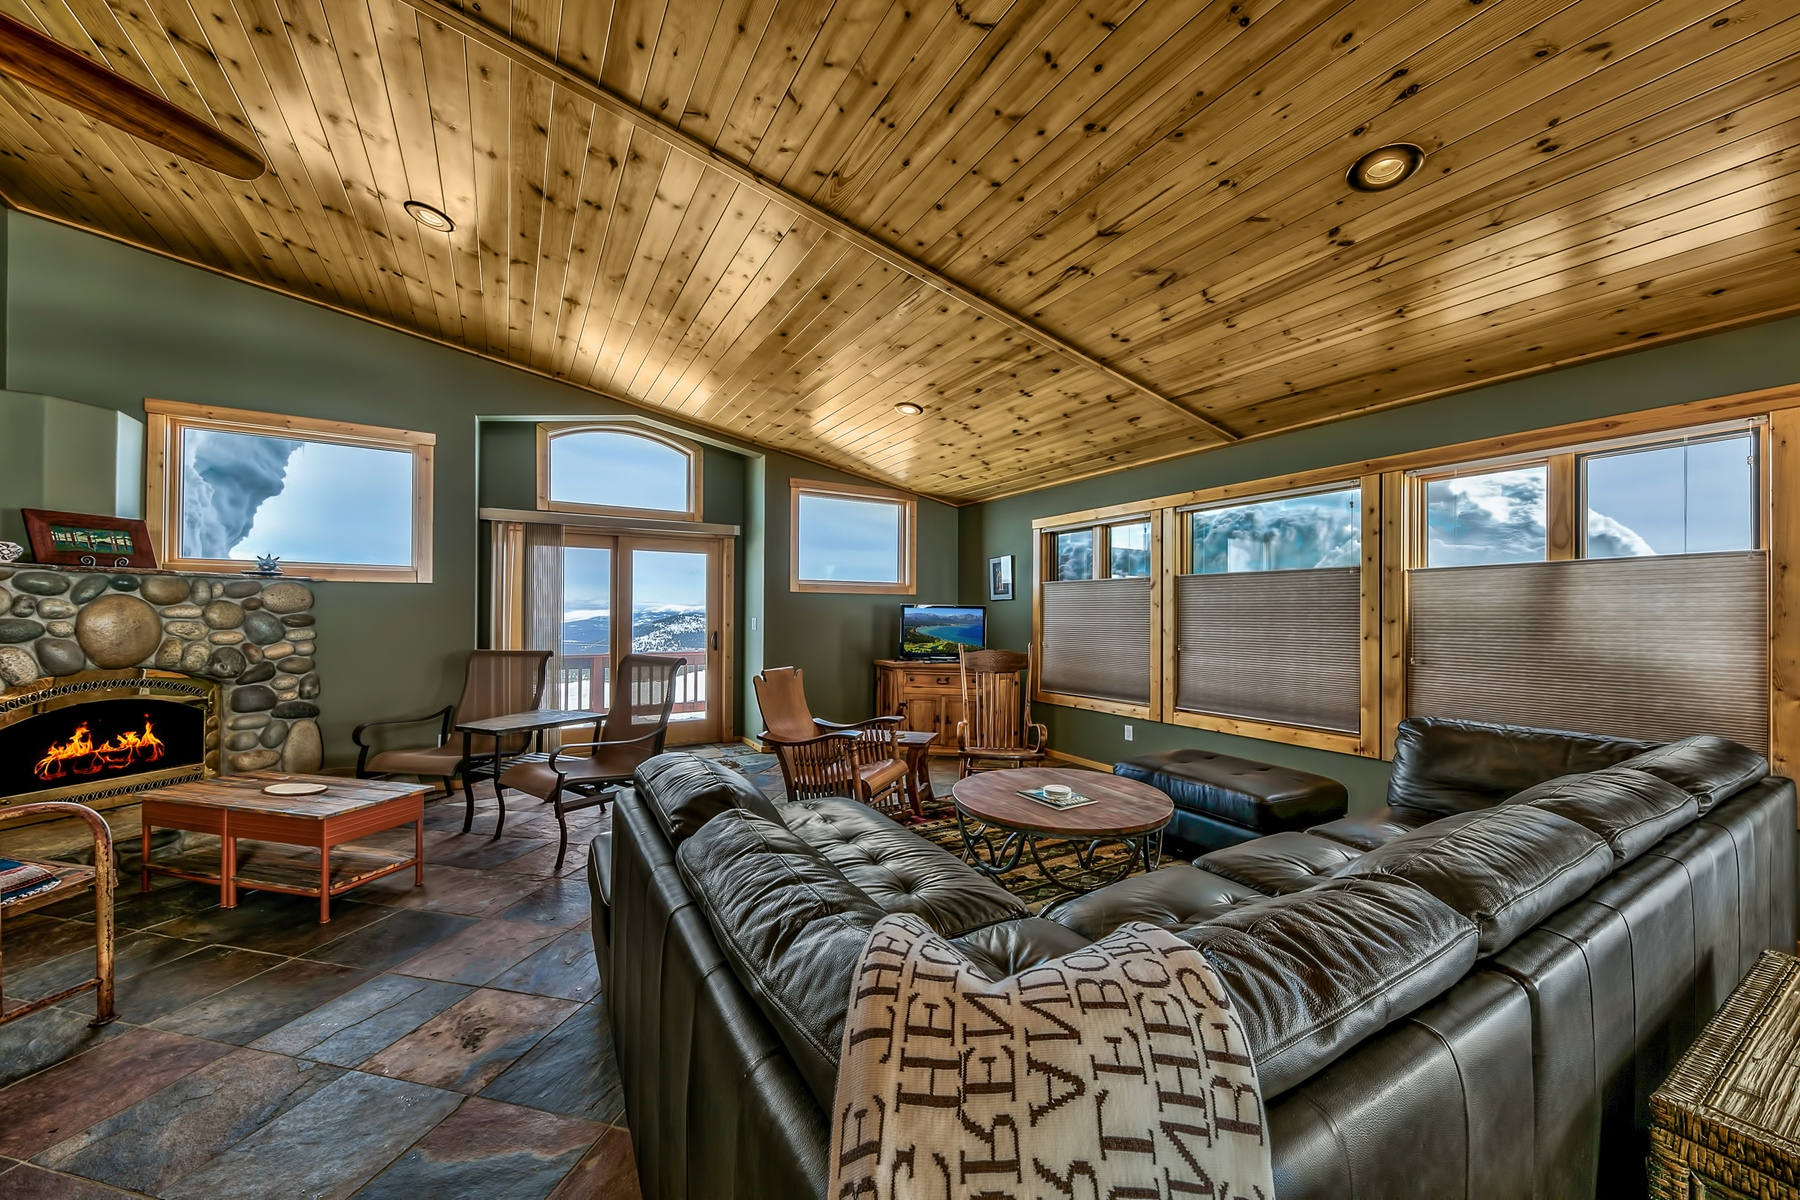 Property for Active at 14476 Skislope Way, Truckee, CA 14476 Skislope Way Truckee, California 96161 United States